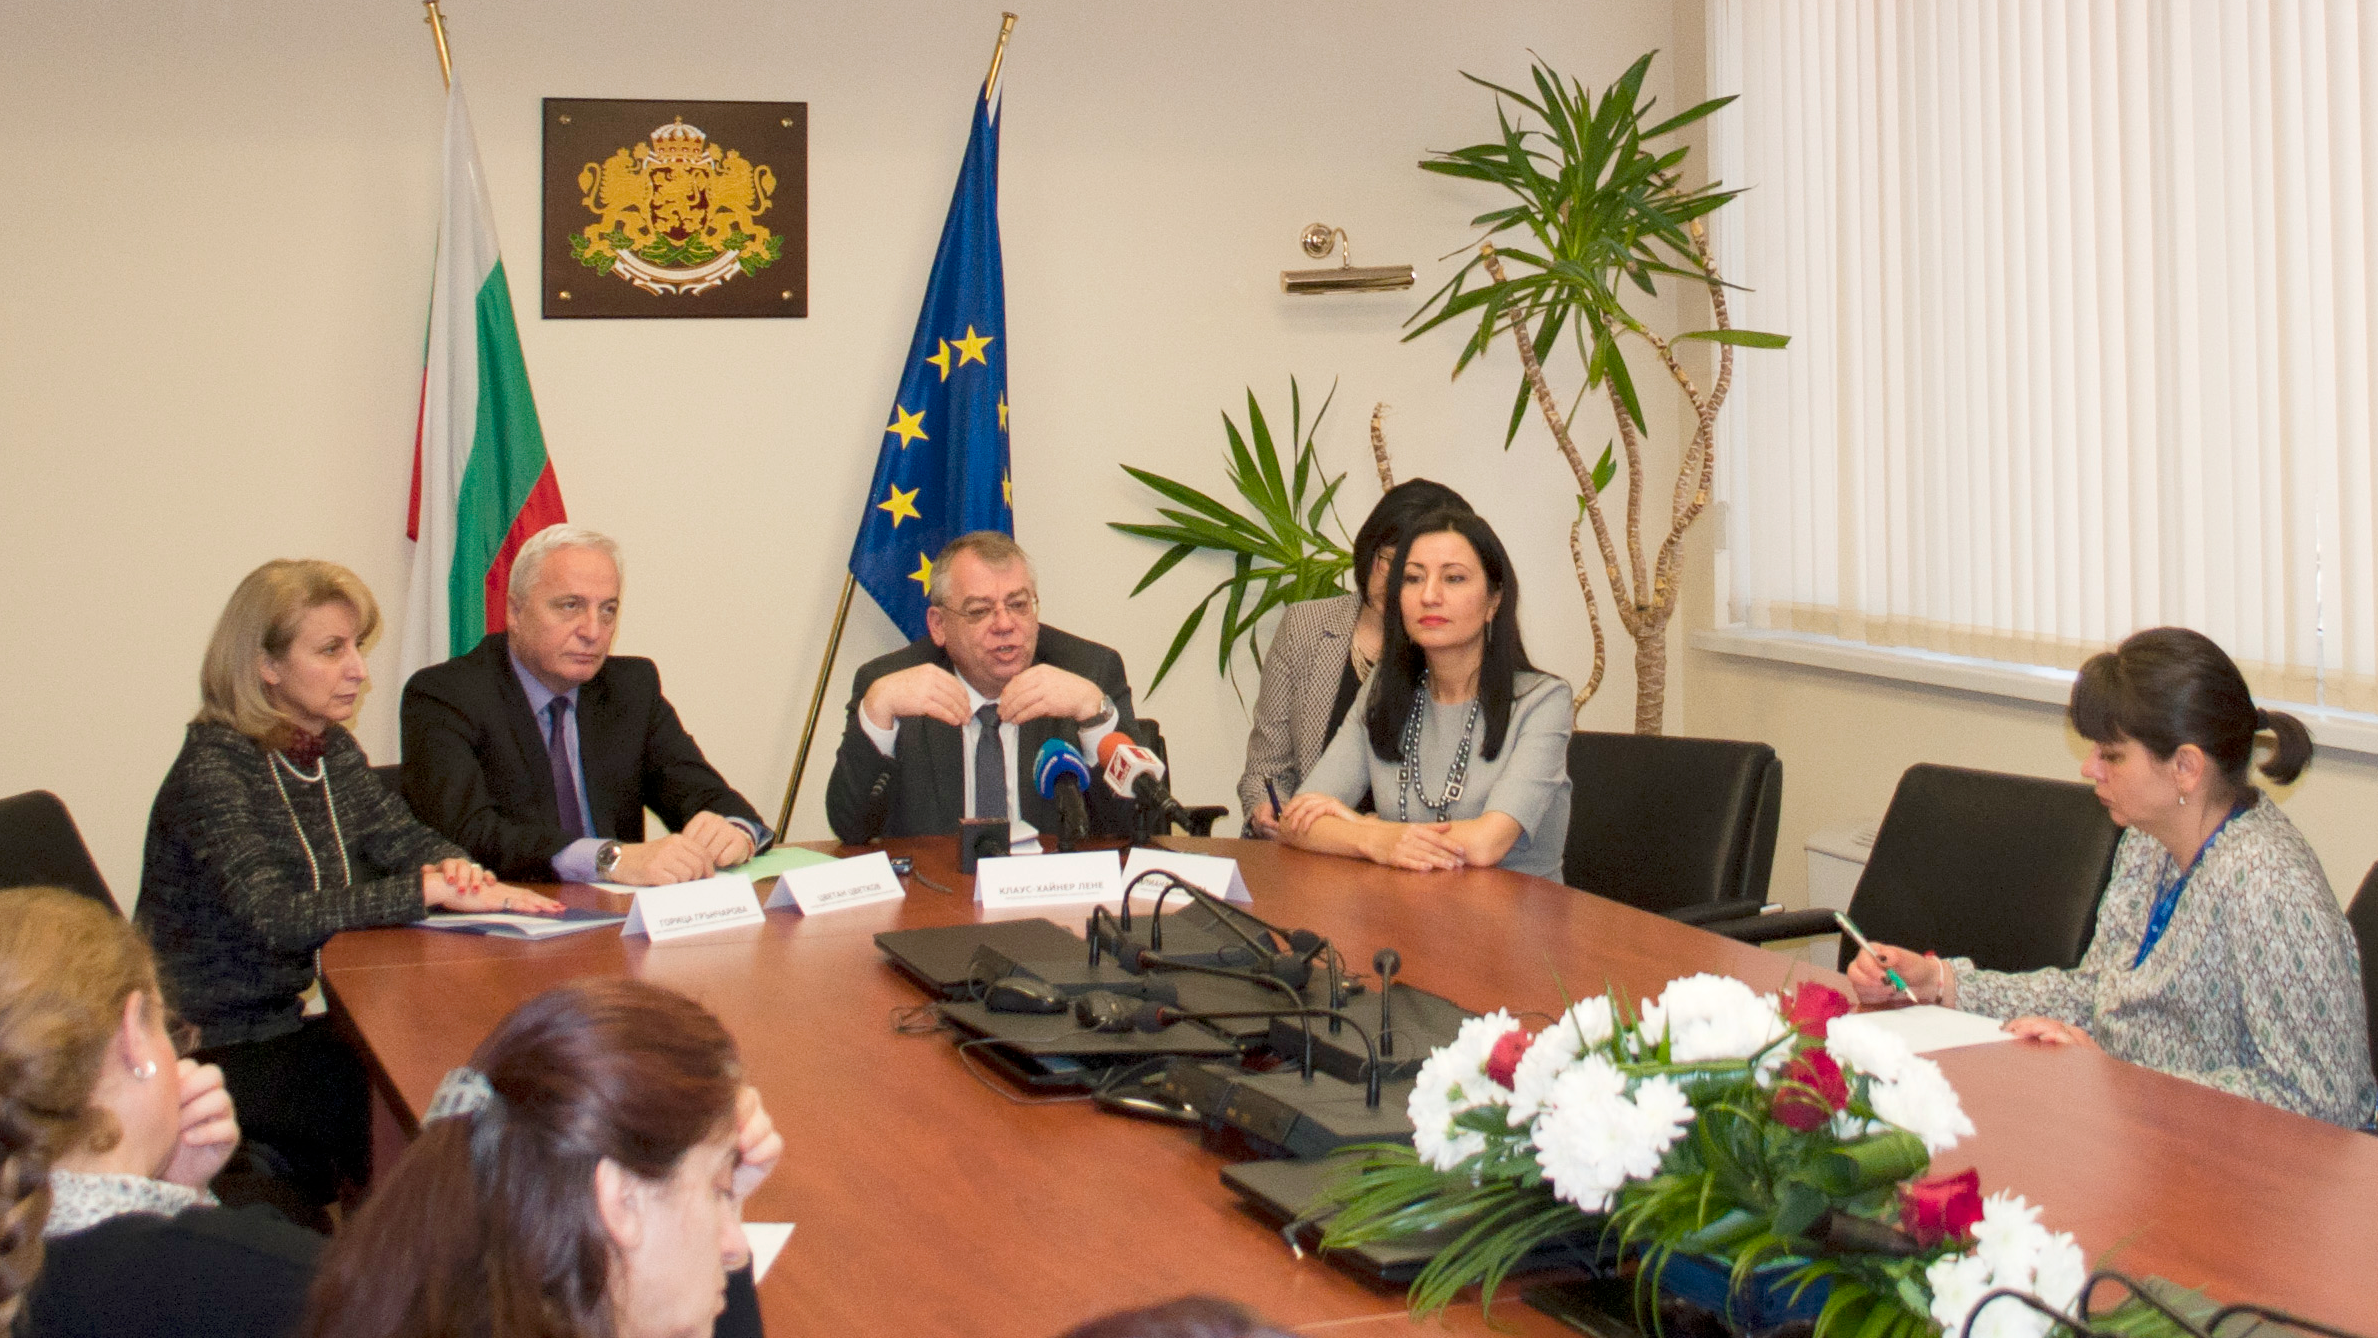 ECA President Lehne and Member Ivanova in Bulgaria today